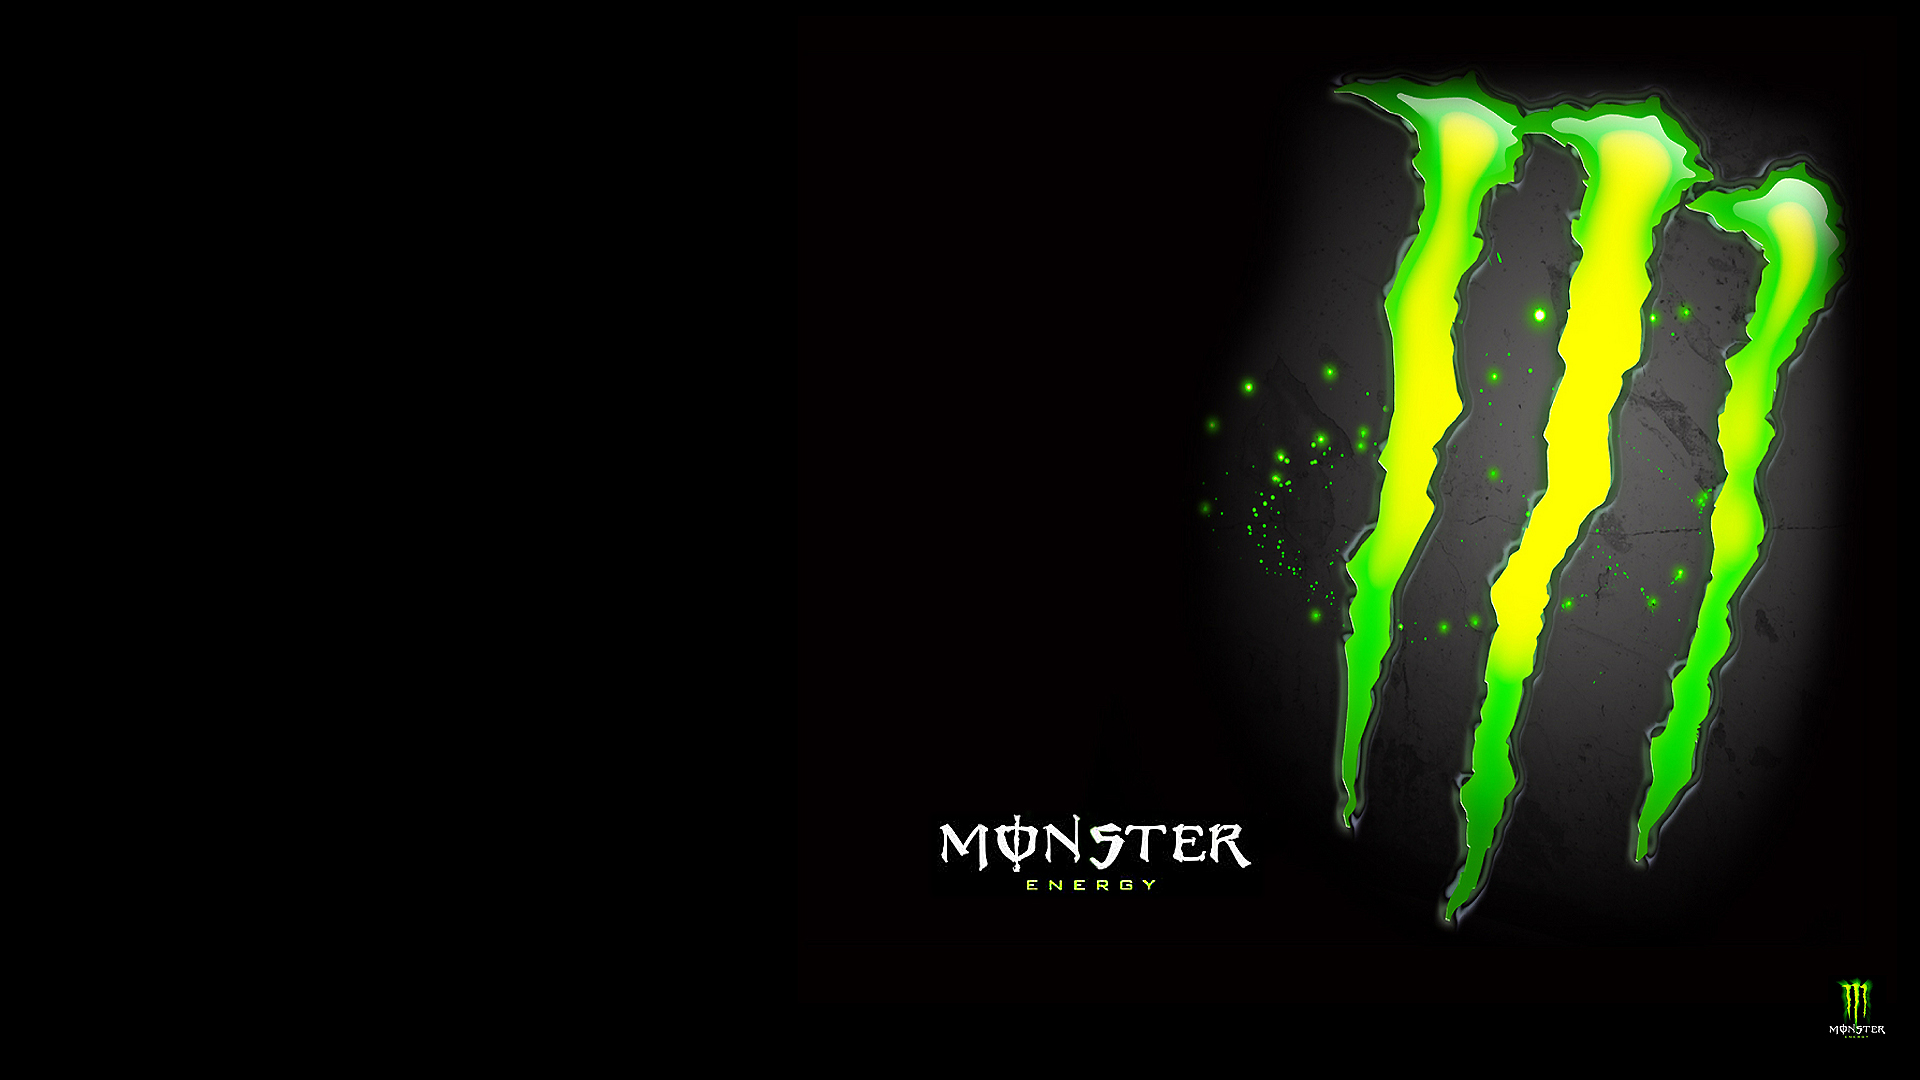 Monster HD wallpaper 0002   Album Monster Wallpaper wallpapers 1920x1080